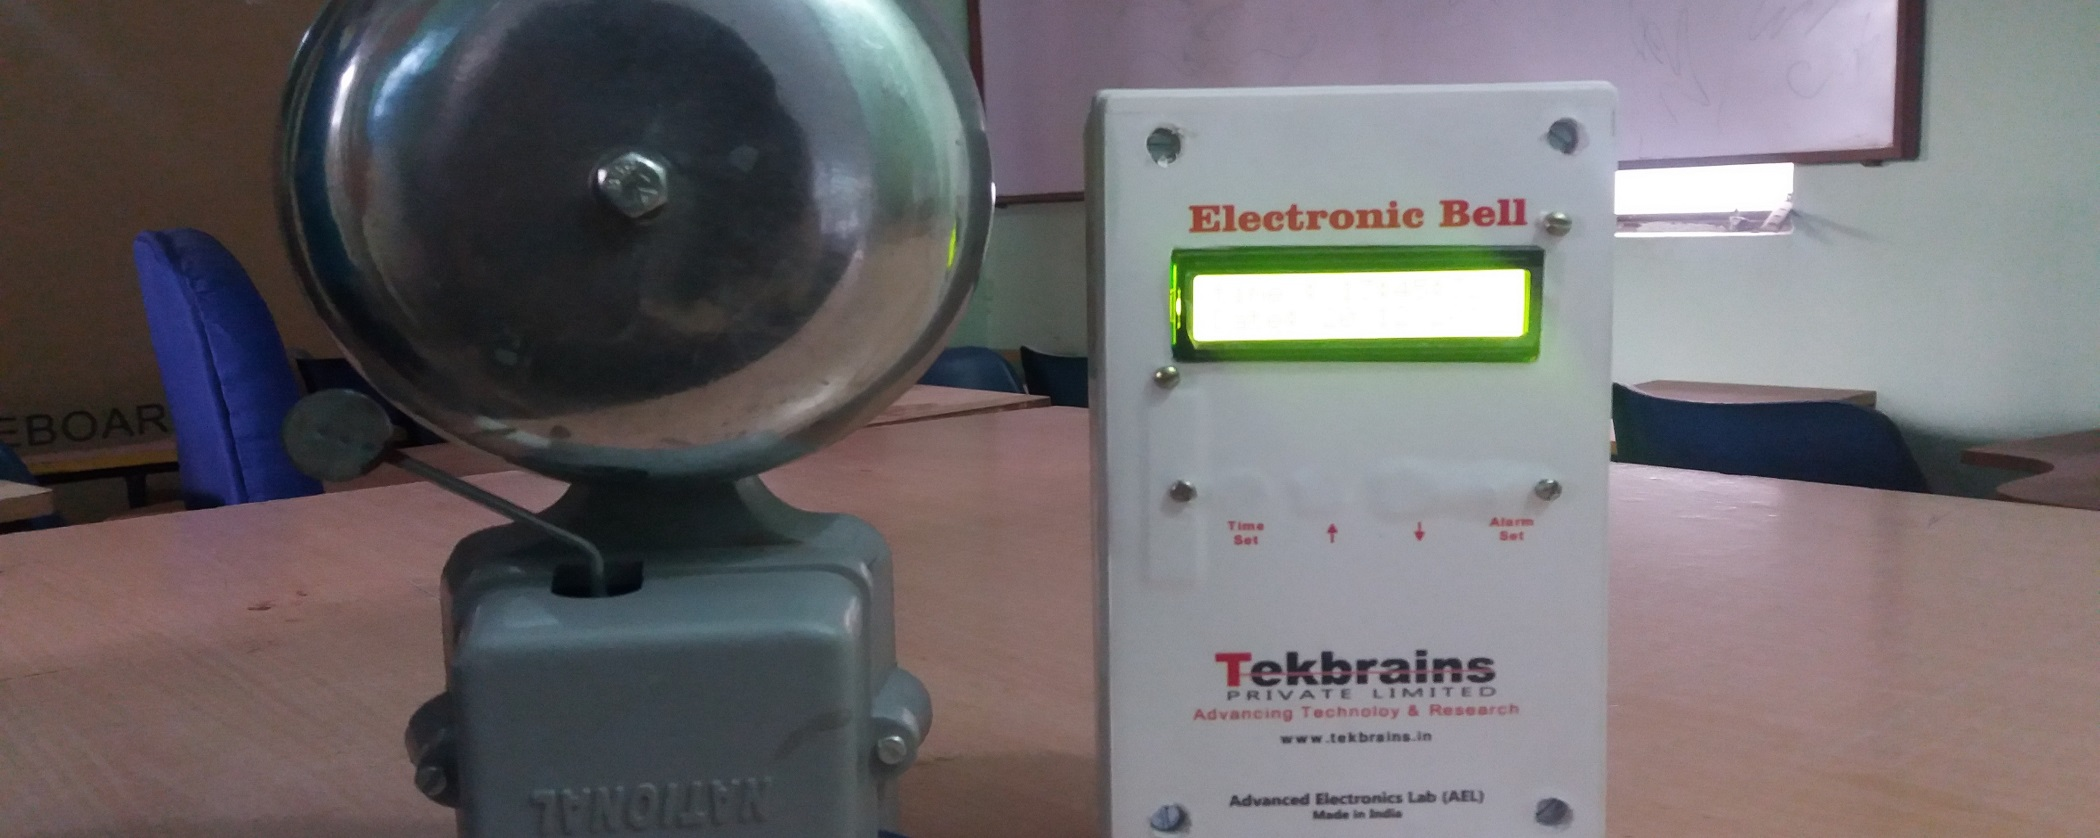 Electronic Bell Ver1